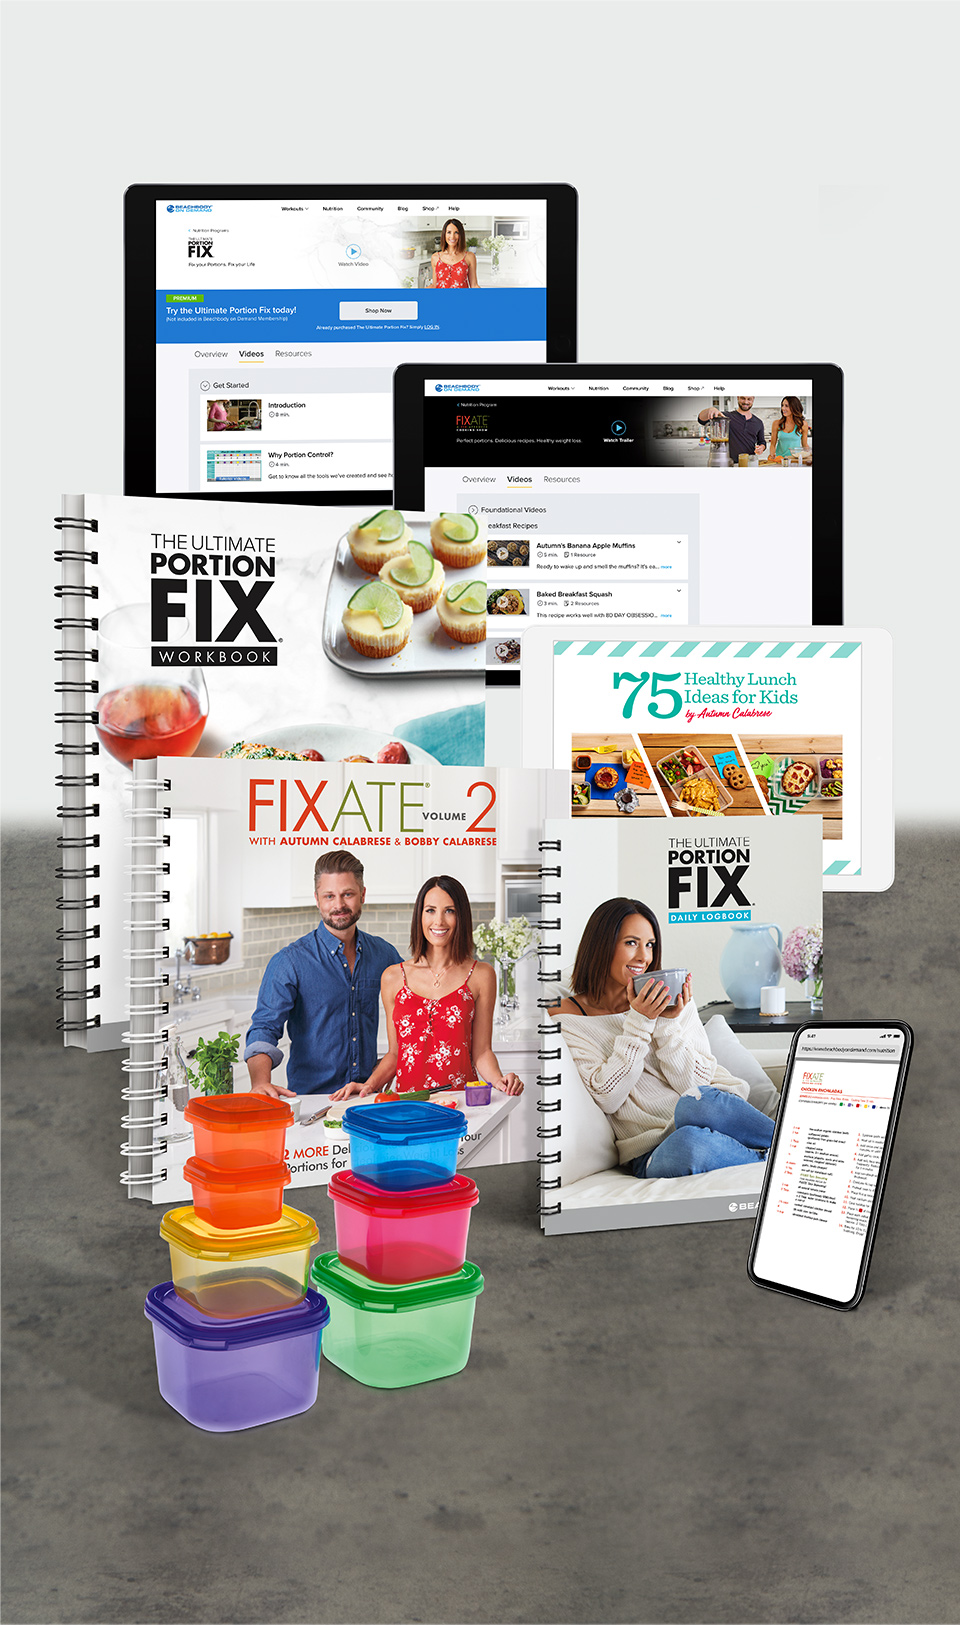 """THE ULTIMATE TOOLS - Get over $2,000 worth of nutrition info with this program, and a 30-day money-back guarantee.30+ Step-by-Step VideosGetting started is as easy as pressing """"play""""WorkbookTake notes as you watch the videos, and complete other written exercises to guide your journeyDaily LogbookTake a minute each day to track what you eat, how you feel, and what's going on with your bodyColor-Coded ContainersUse these to portion out every meal, even snacks and dessertsFIXATE Vol. 2 CookbookDiscover over 100 brand-new recipes that work with your containersFIXATE Cooking ShowThis container-based cooking show is a great resource for delicious meals75 Healthy Lunch Ideas for Kids PDFGive your kids healthy meals they'll love to eatInsulated Tote BagKeep your hot food warm and your cold food cool when you're on-the-go (only on select offers)NUTRITION AppAccess the program, stay on top of your daily container use, your portions, Shakeology, and stay in touch with your groupBonus Workouts21 Day and 21 Day Fix EXTREME shot in real time with a new workout every day, updated for faster progress"""